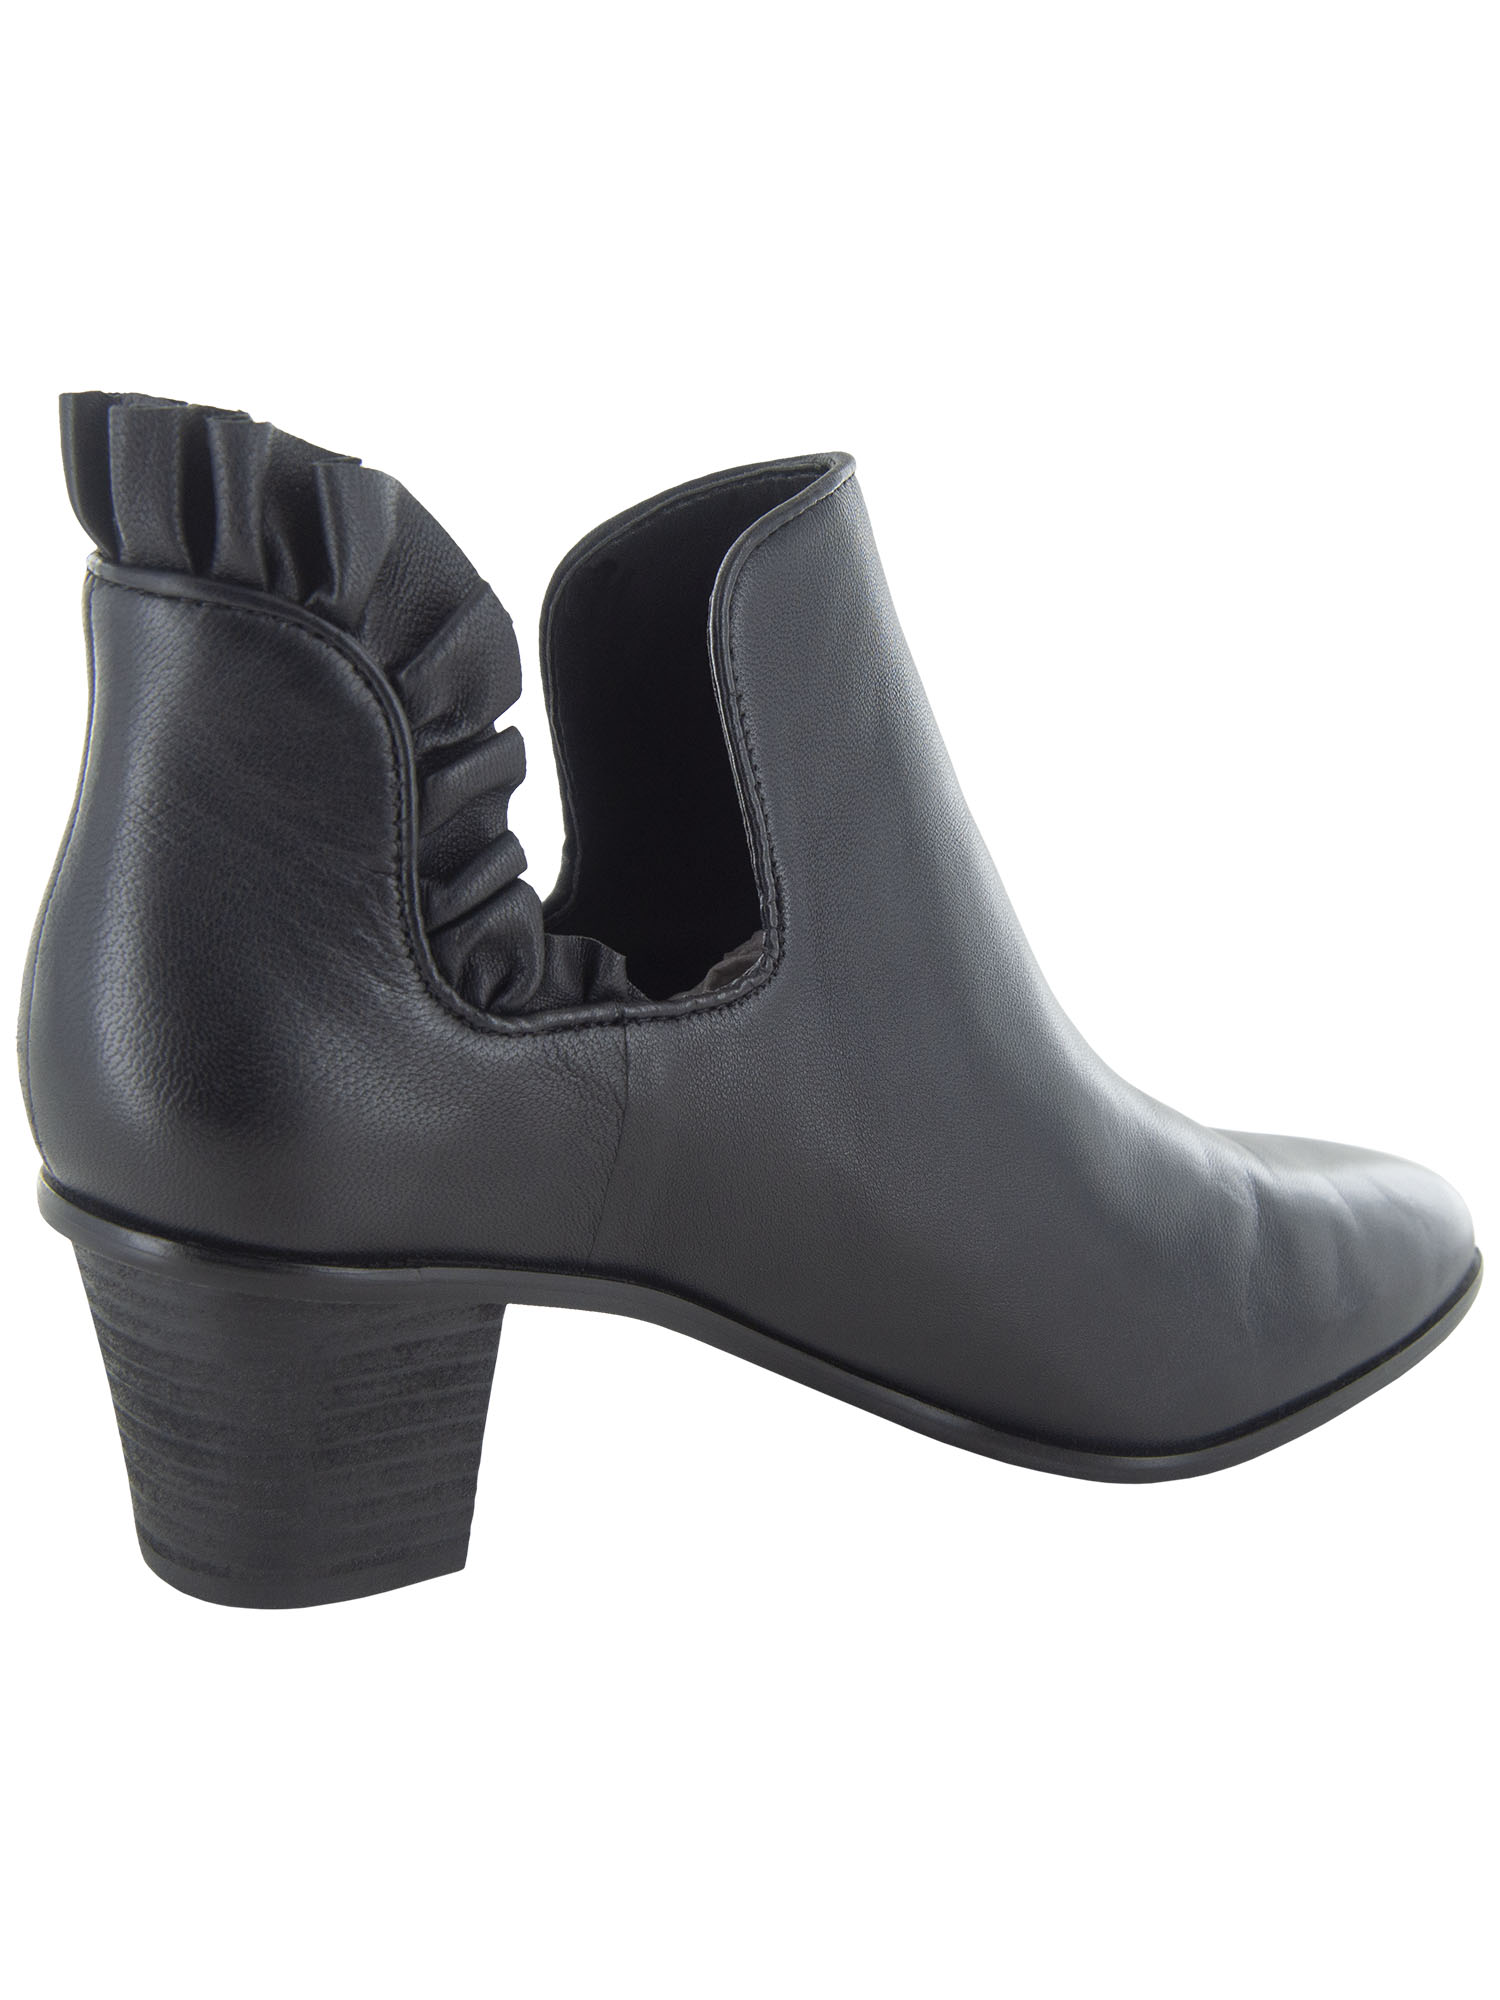 thumbnail 4 - Lori Goldstein Collection Womens Cydney Ankle Bootie Shoes